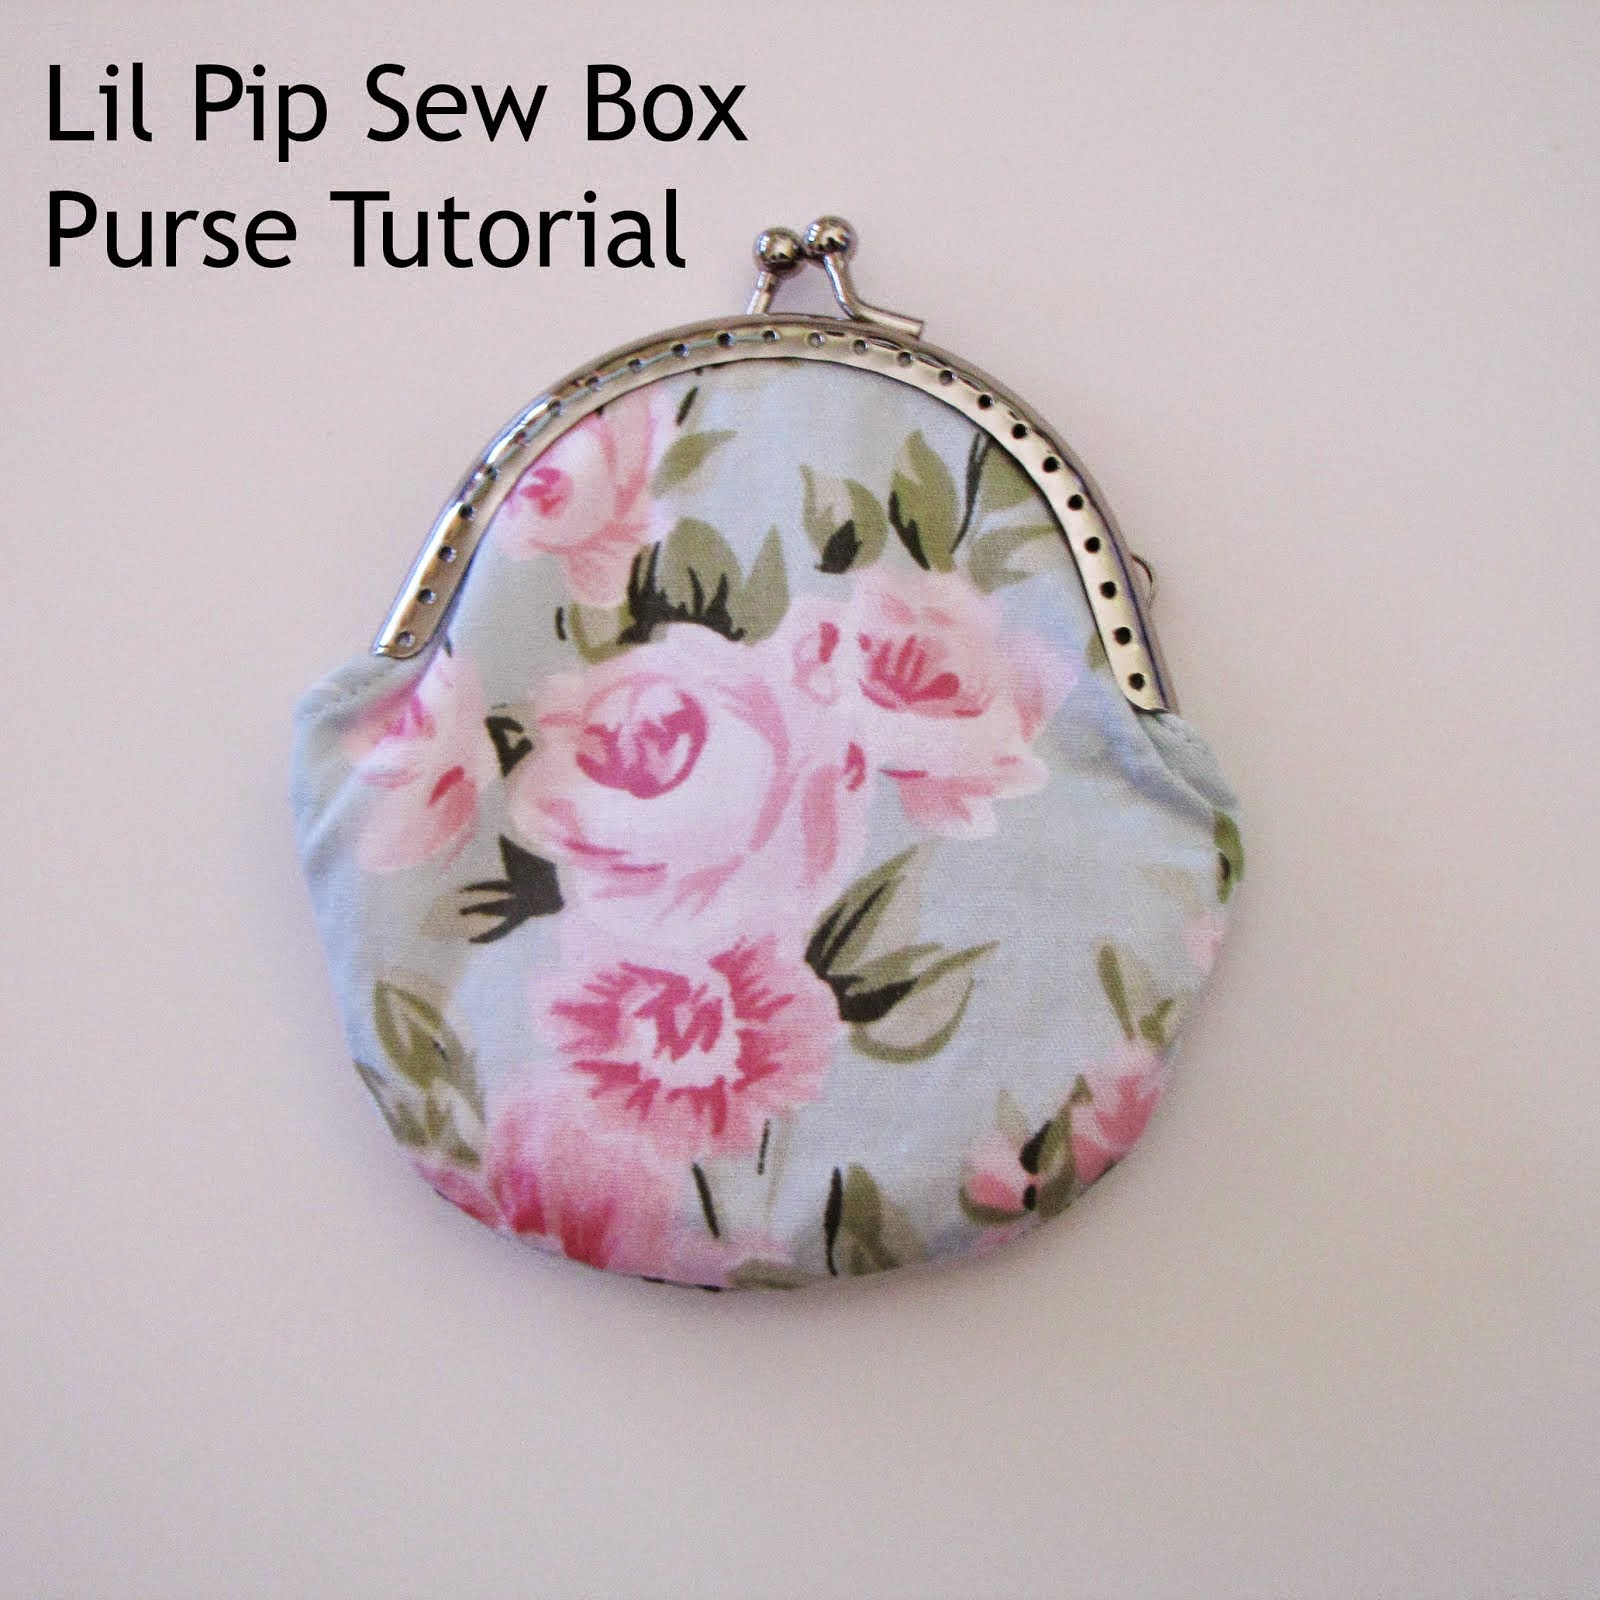 Lil Pip Sew Box Purse Tutorial